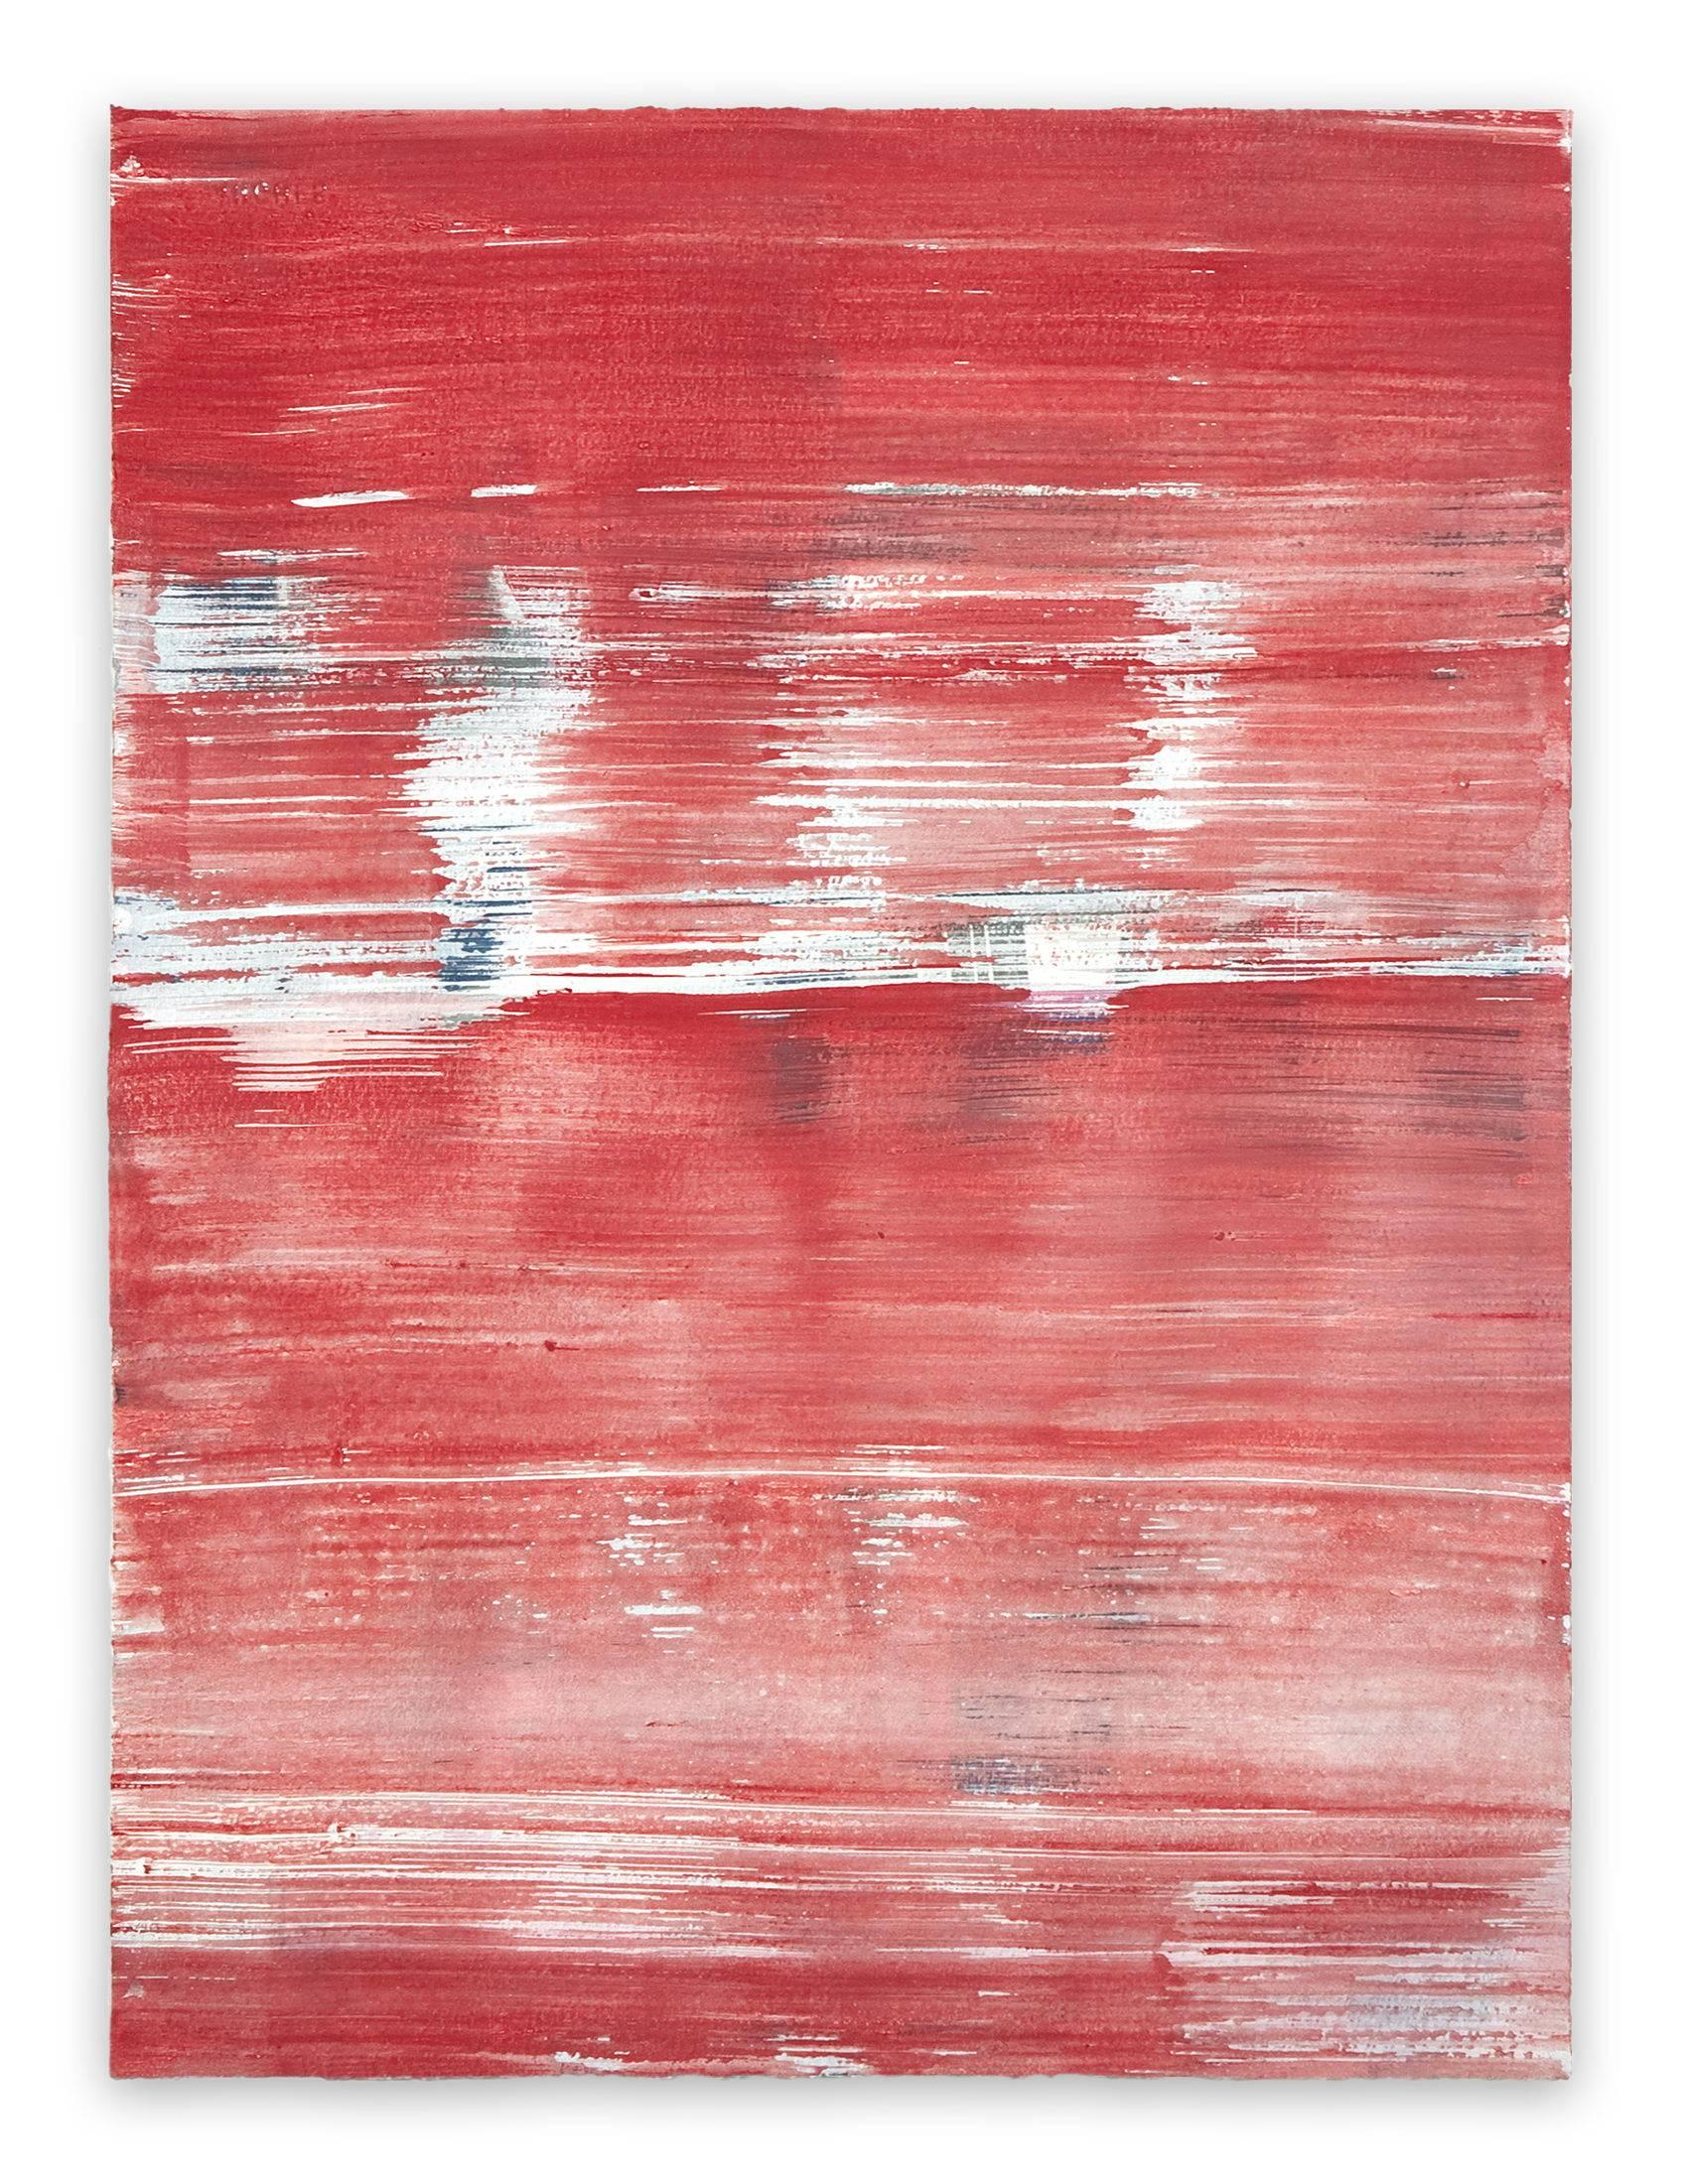 Schist 9 (Abstract painting)